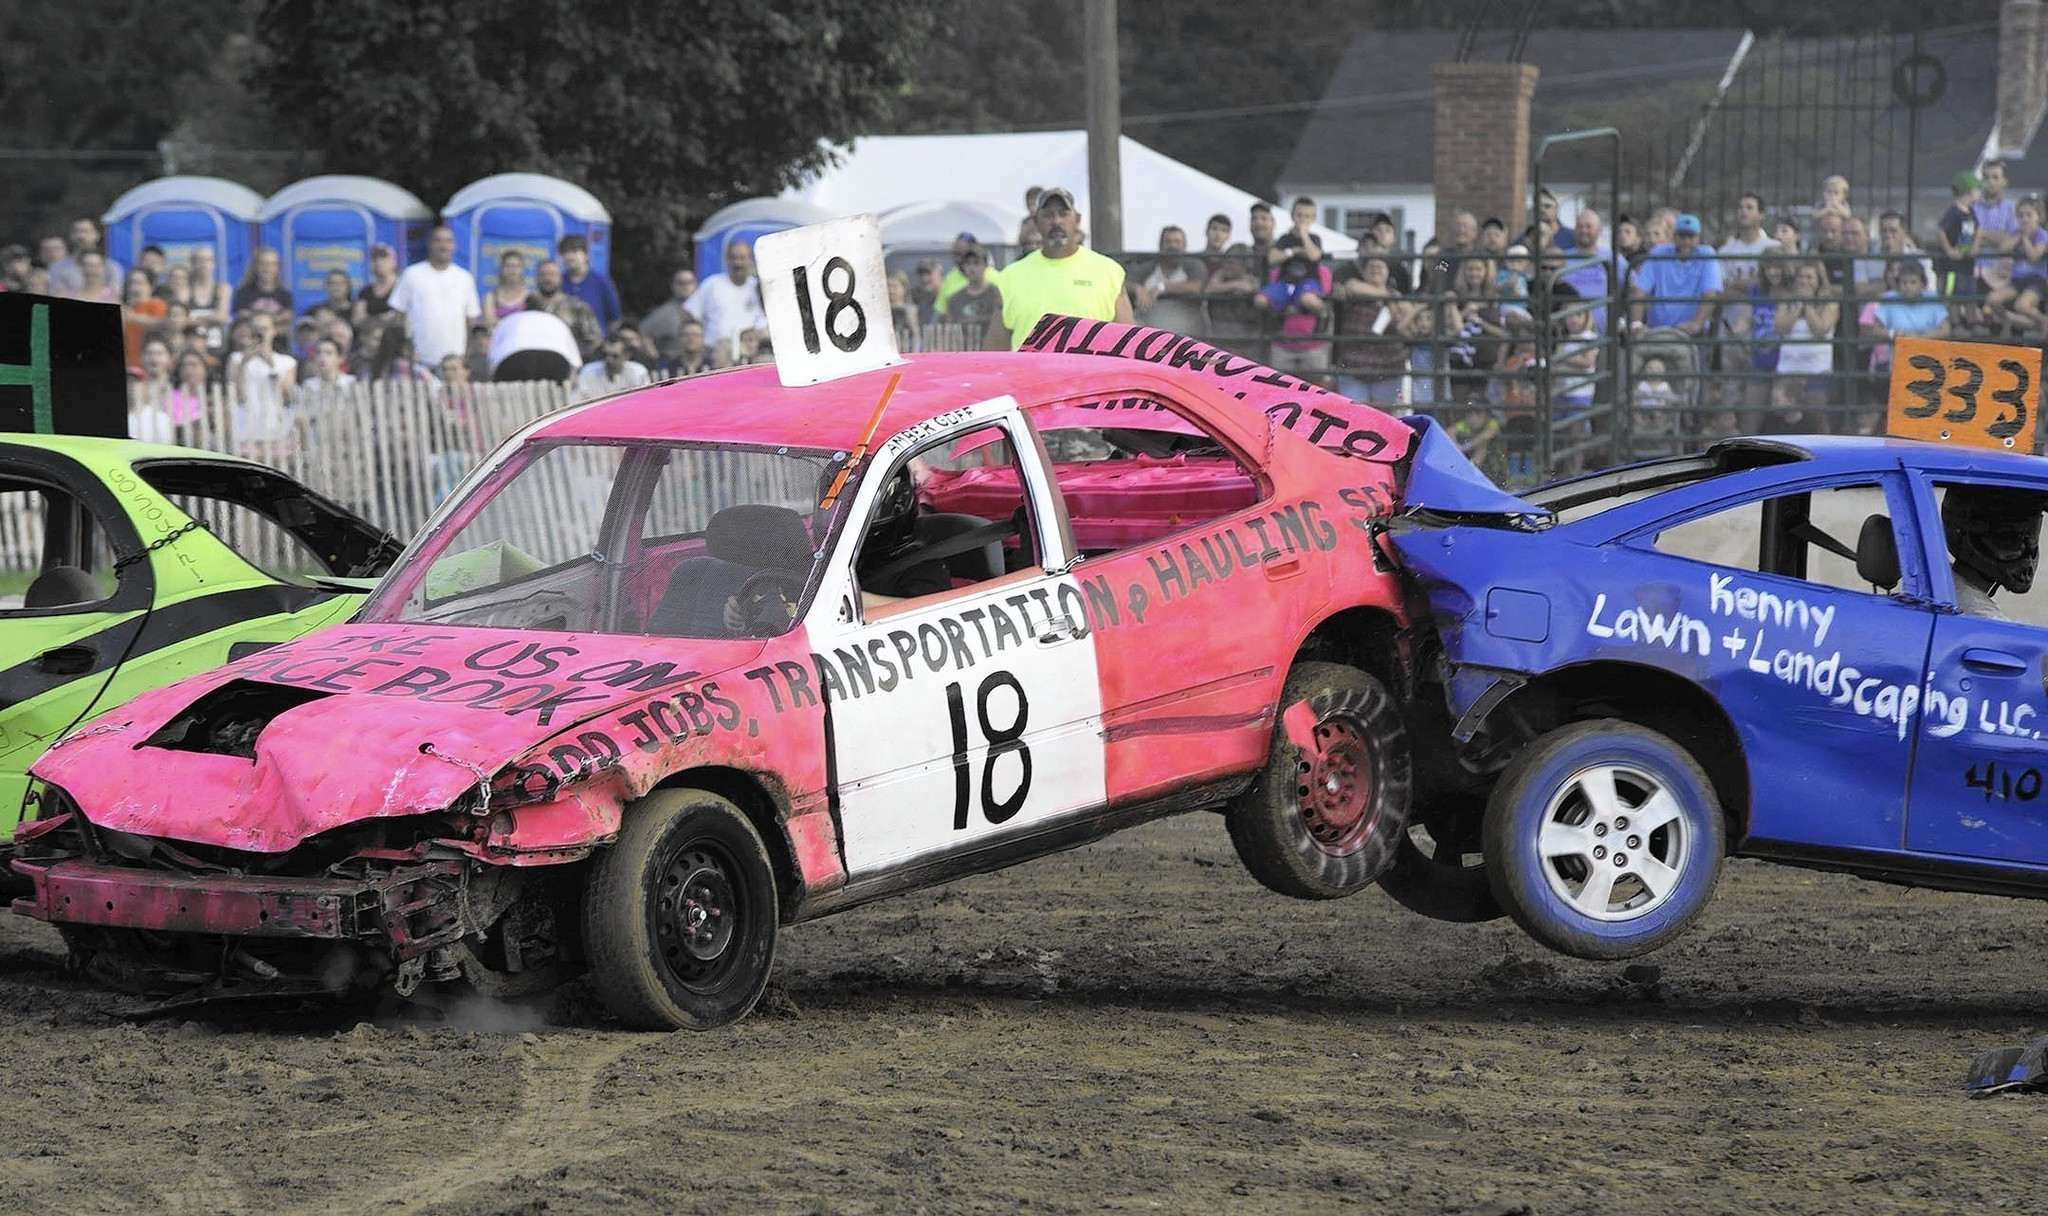 Car crashes and smashes elicit cheers at 4 h fair s demolition derby carroll county times